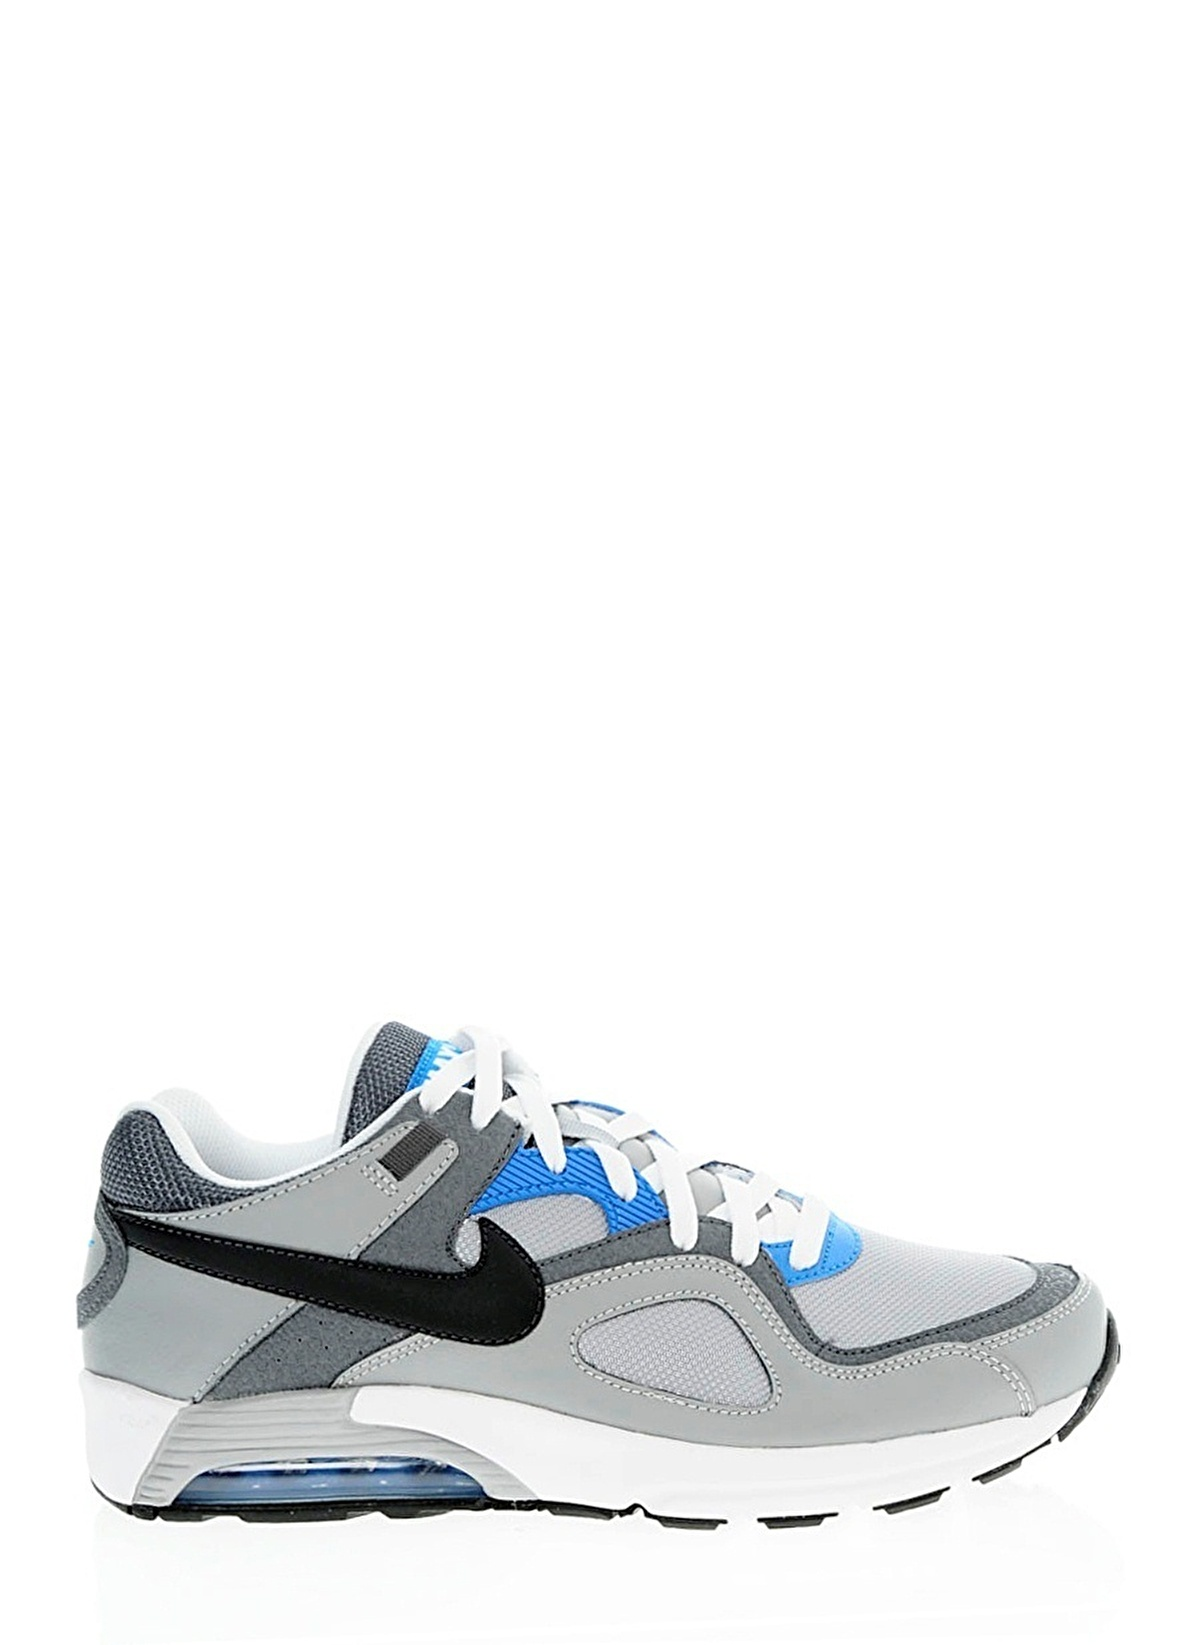 Inesperado canal índice  Nike Erkek Air Max Go Strong Essential Silver/Anthrct-Drk Gry-Pht Bl |  Morhipo | 10422374